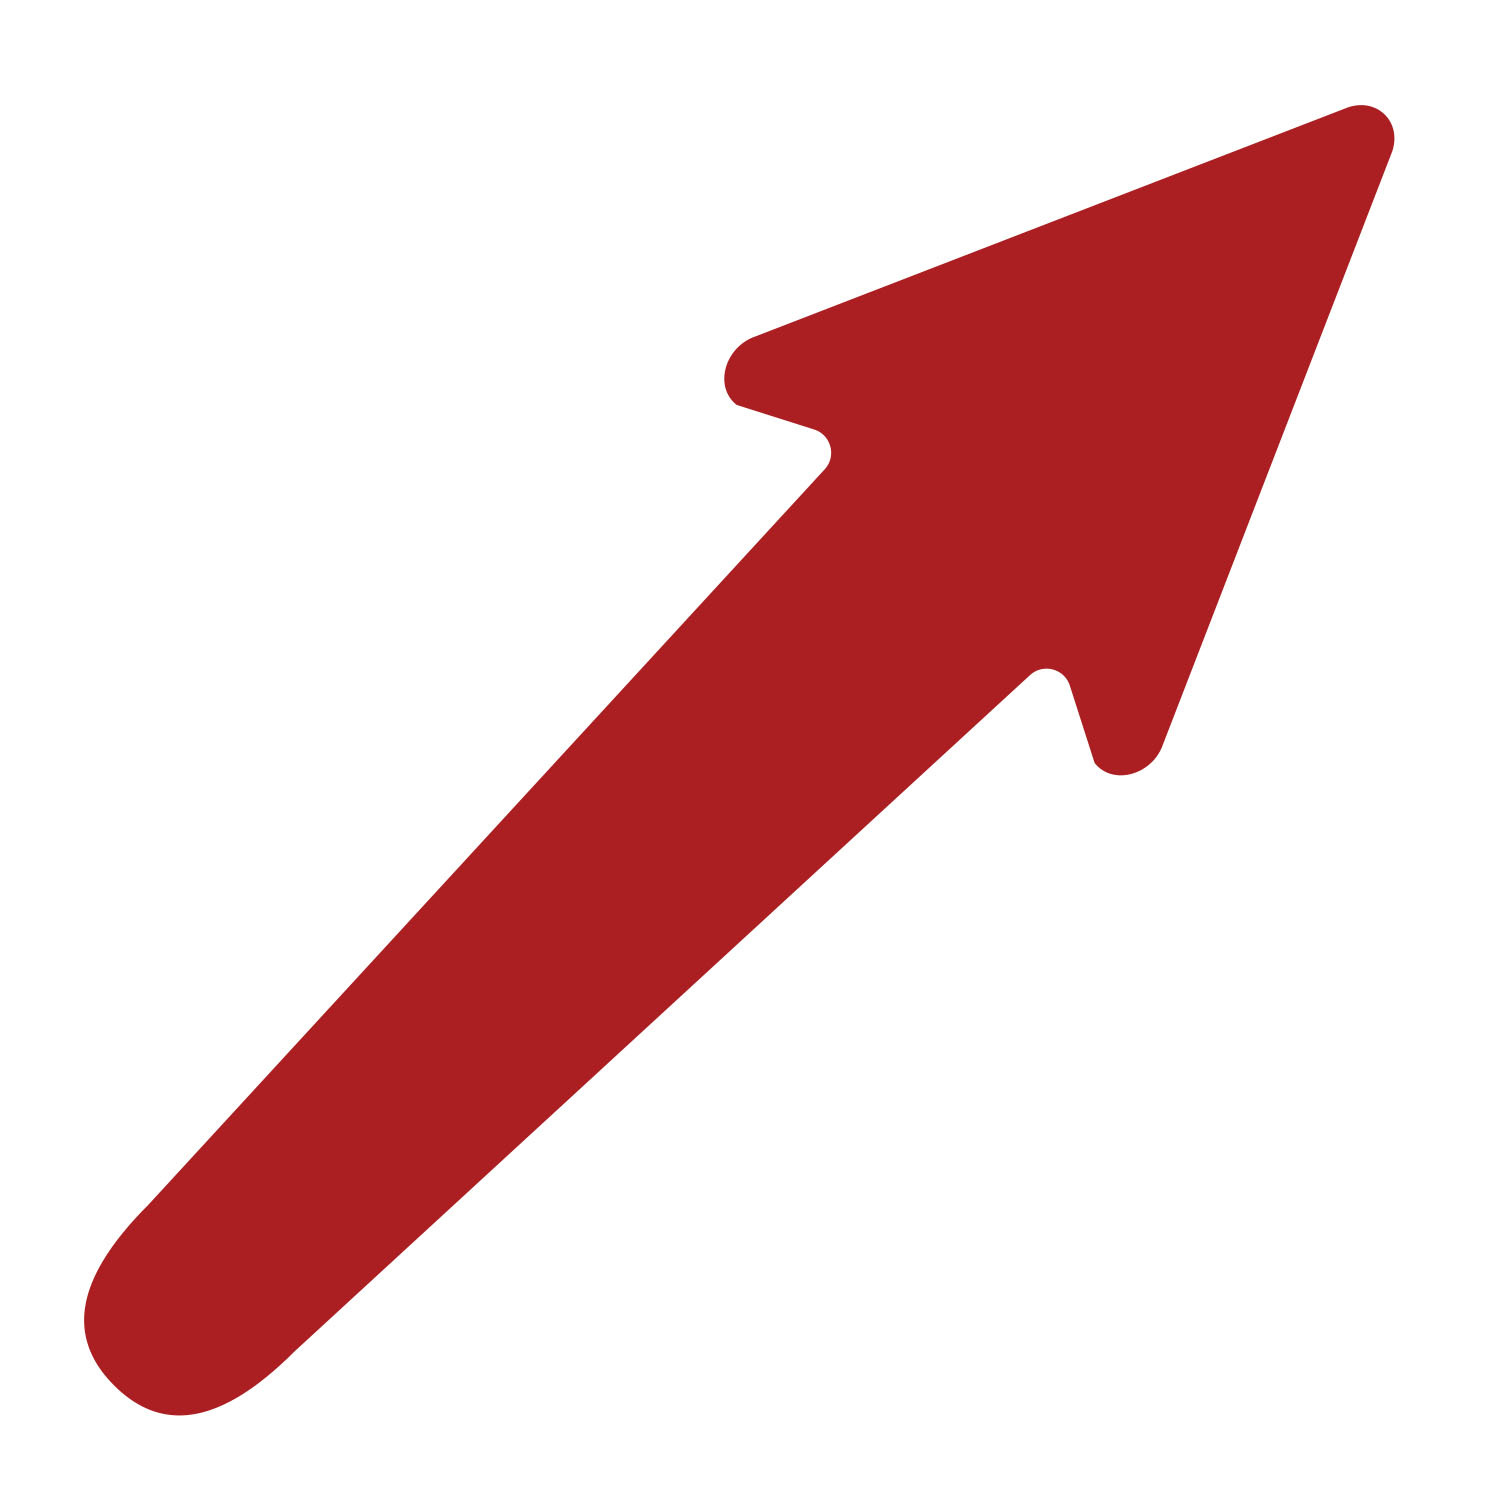 Primary image for LiteMark 11 Inch Red Adhesive Comet Arrow Decals - Pack of 10